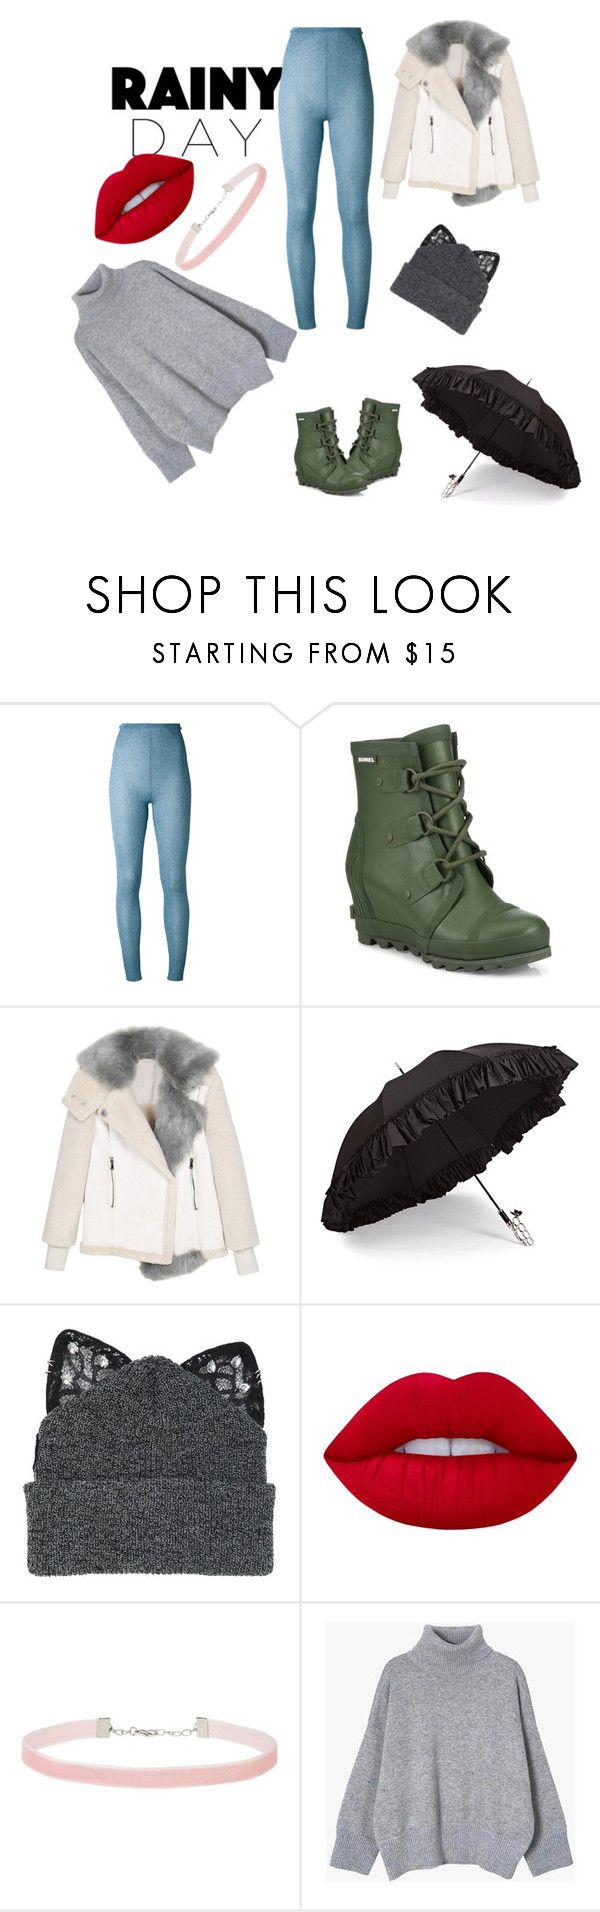 """""""Rainy day"""" by nicole-redhaired ❤ liked on Polyvore featuring Melampo, SOREL, Gizelle Renee, Silver Spoon Attire, Lime Crime and Miss Selfridge"""